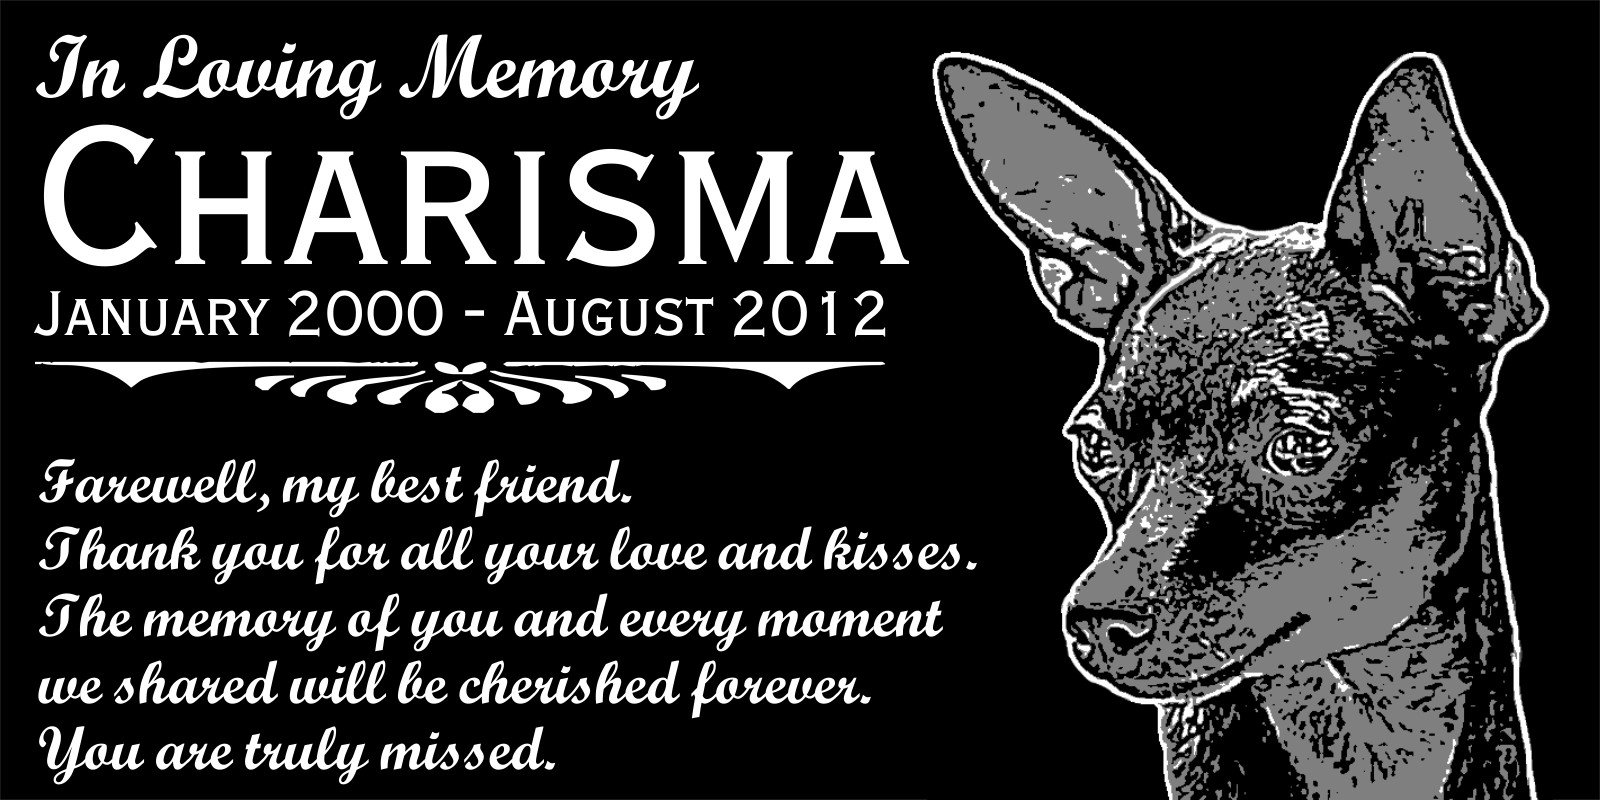 Personalized Miniature Pinscher Dog Pet Memorial 12''x6'' Custom Engraved Black Granite Grave Marker Head Stone Plaque CHA2 by Lazzari Collections (Image #1)